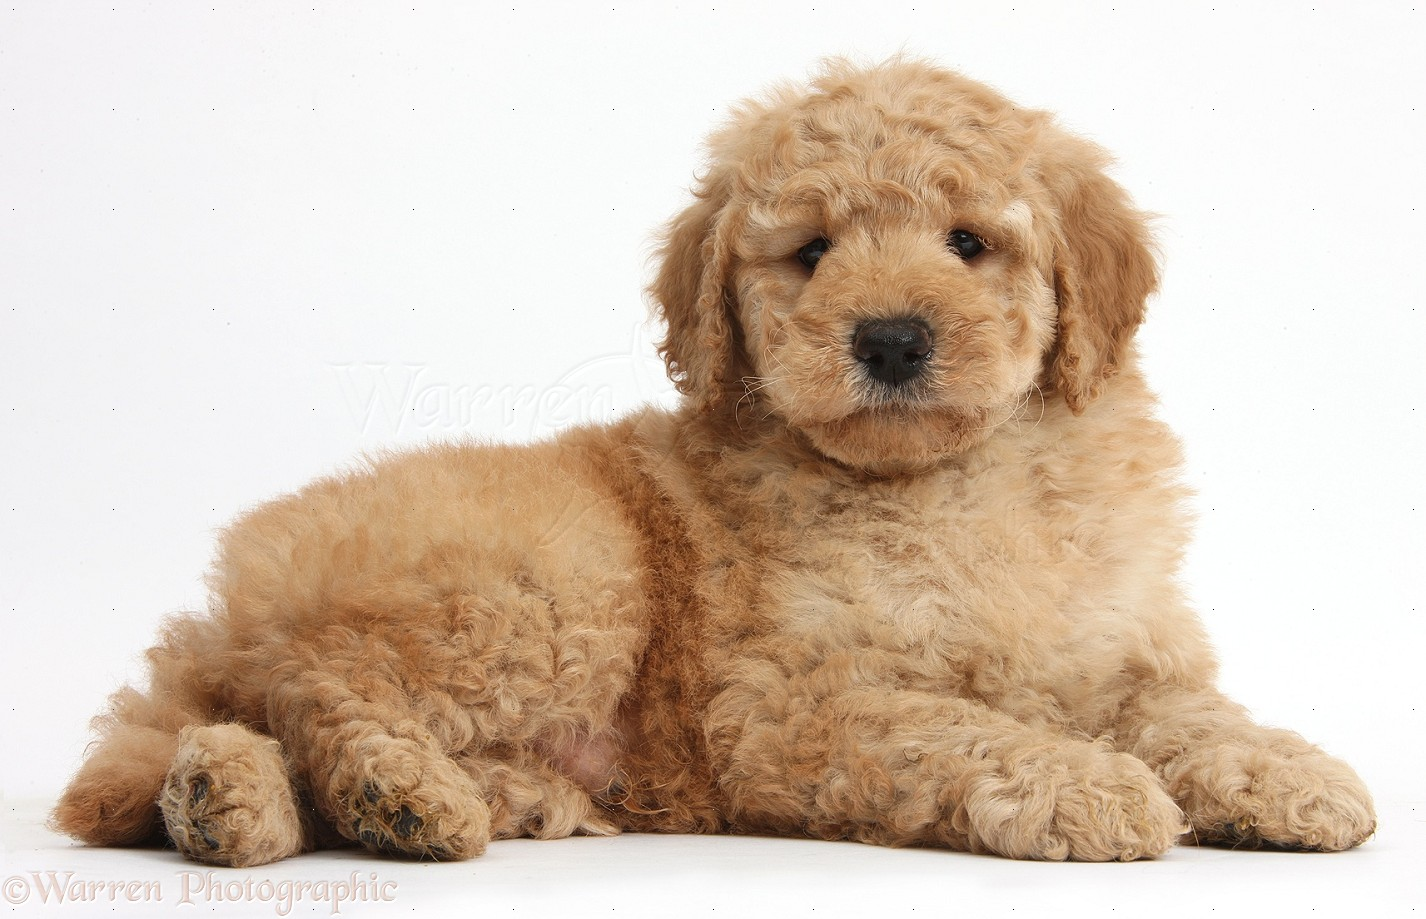 Dog Cute Toy Goldendoodle Puppy Photo Wp37993